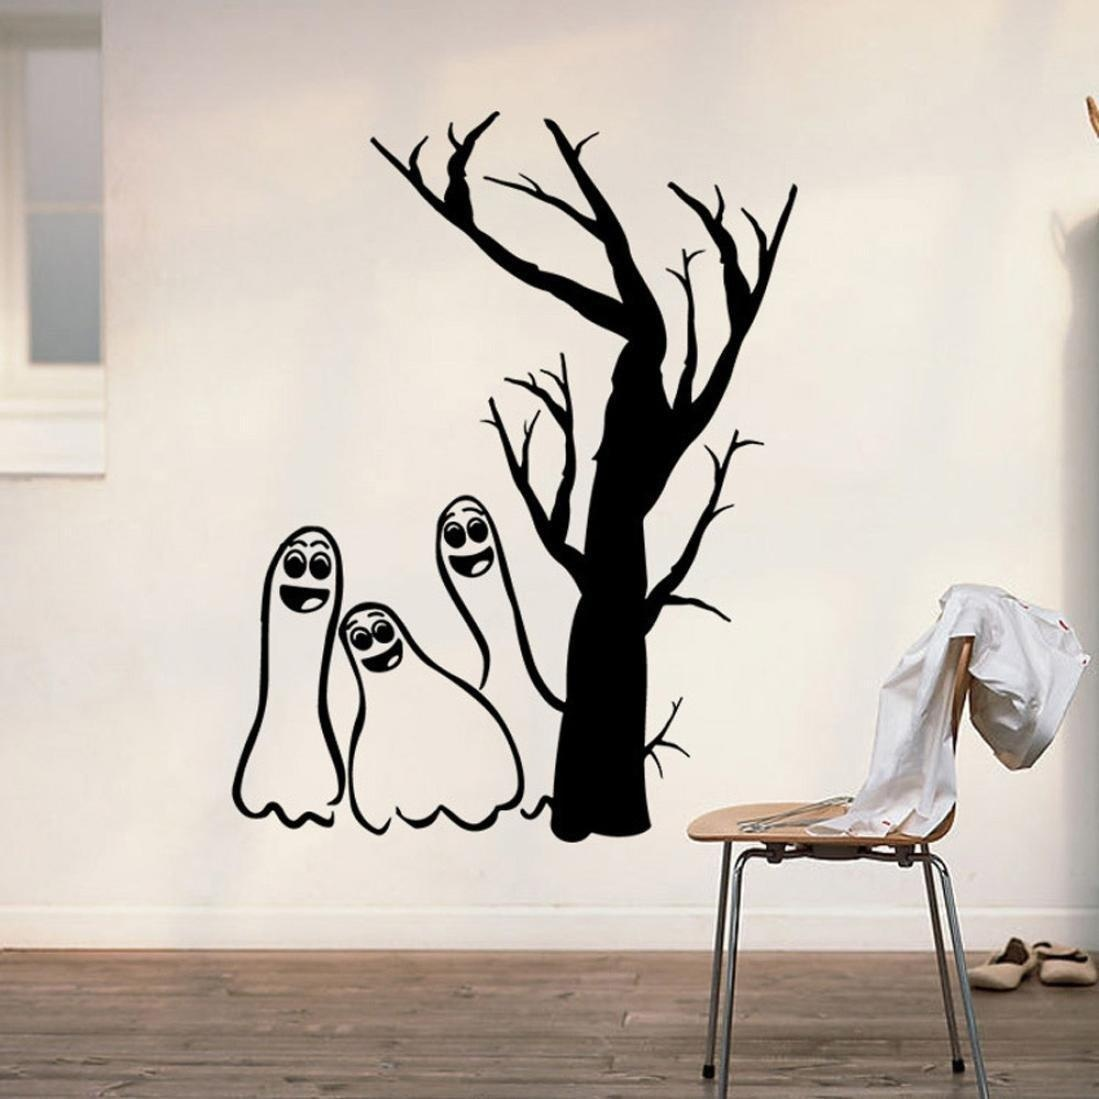 Online Store Homefind Halloween Removable Scary Ghosts Under Tree